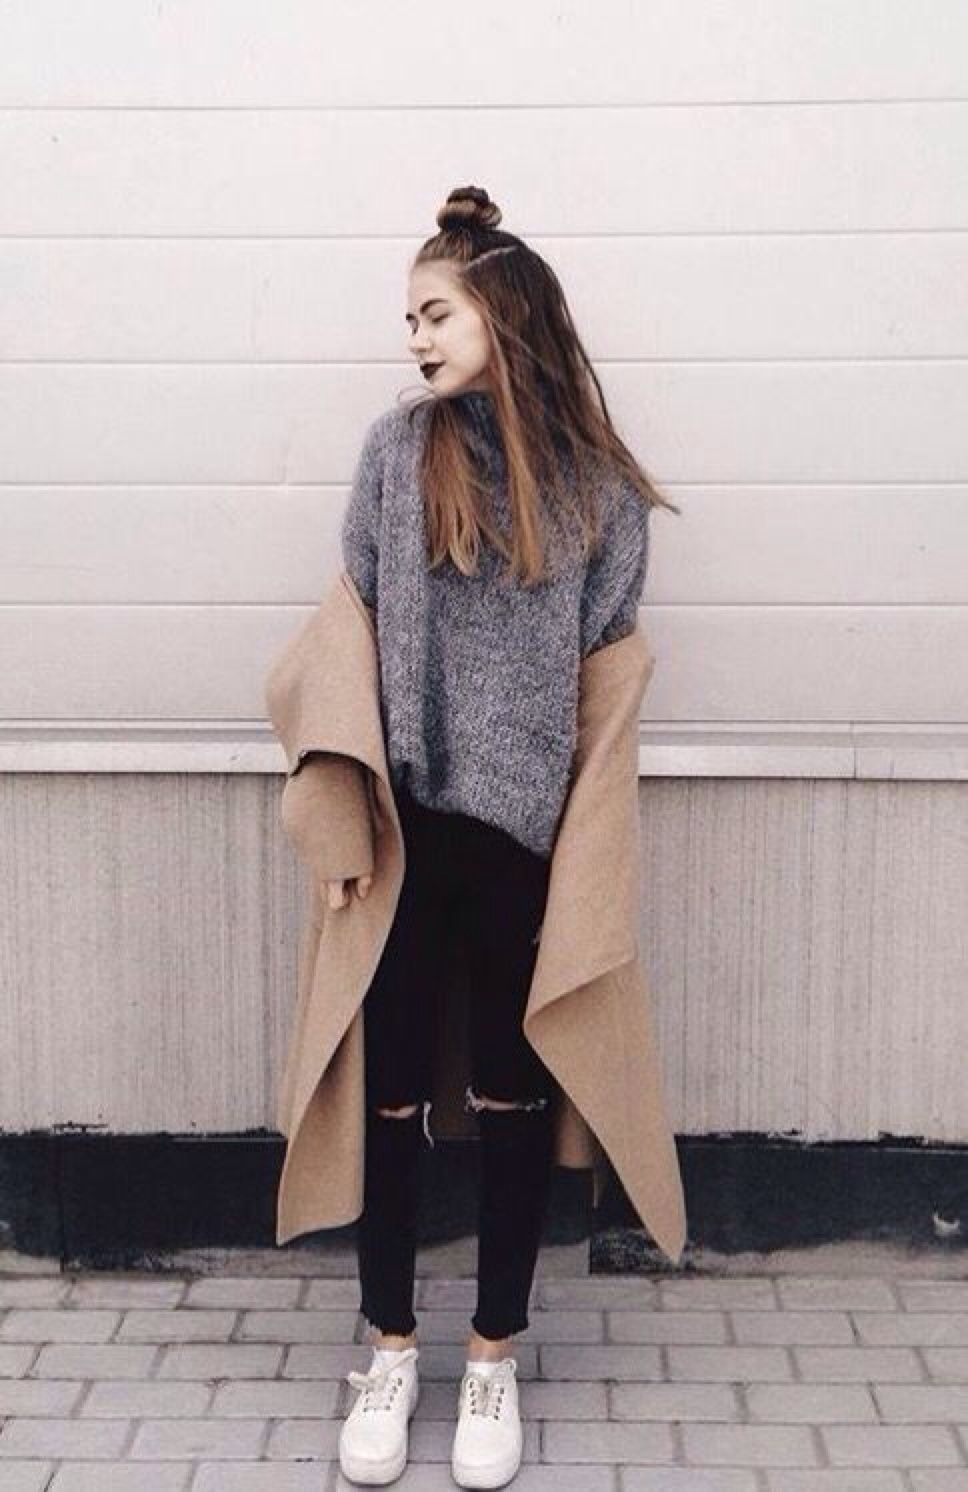 Grunge Street Outfit For Winter Pictures Photos And Images For Facebook Tumblr Pinterest